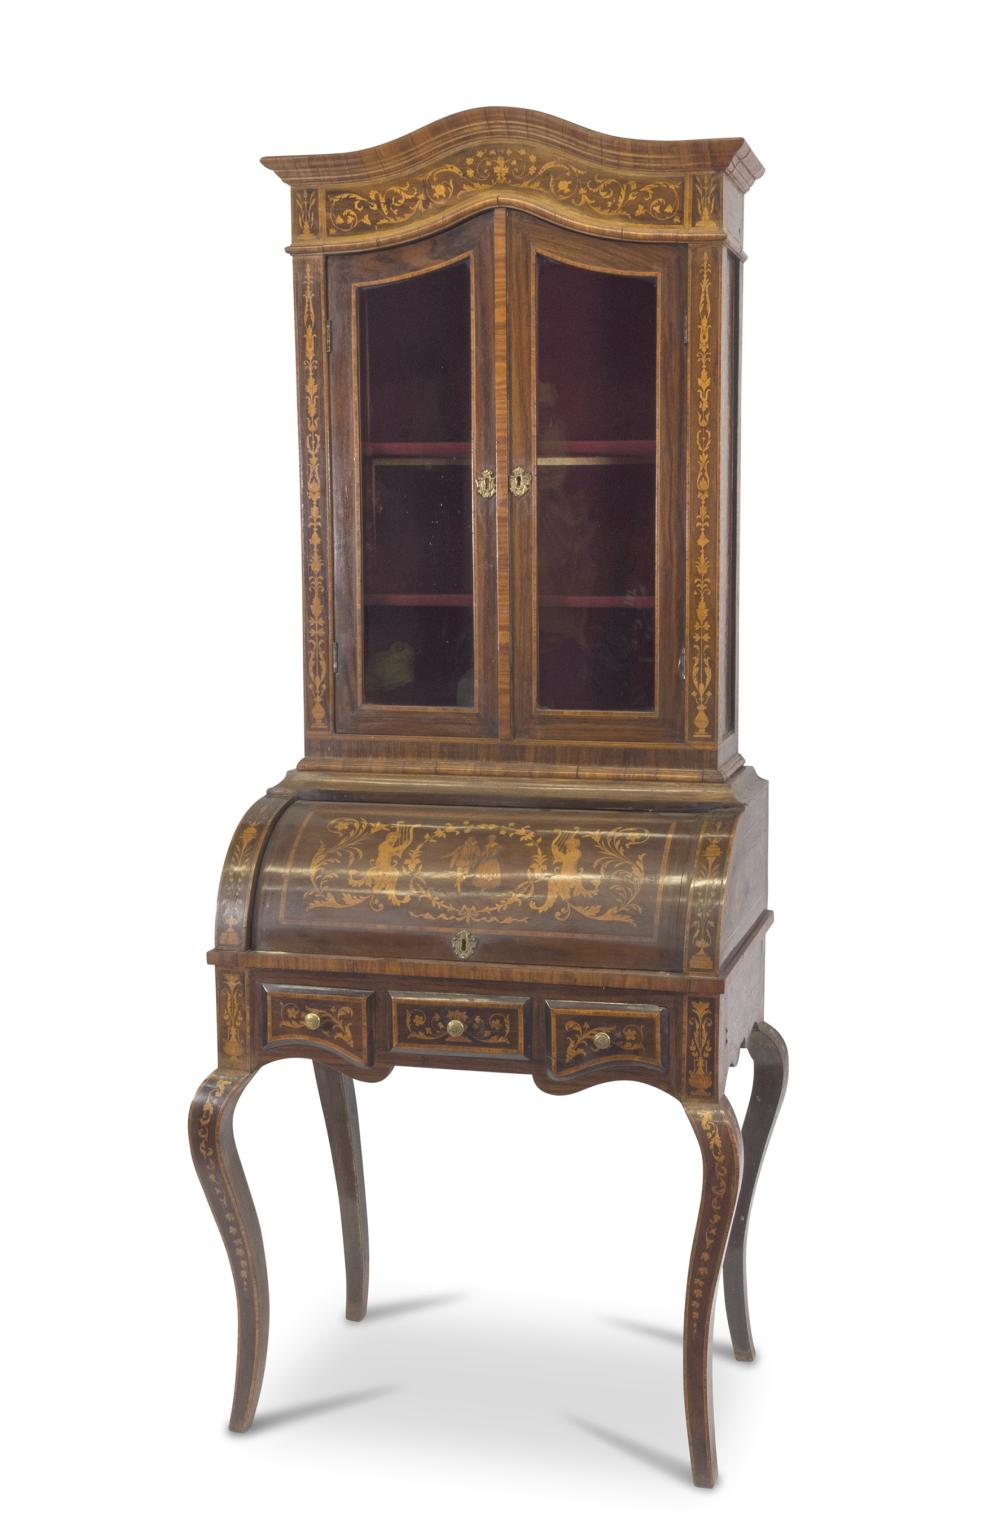 FLIP TOP GLASS CABINET IN PALISANDER, NORTHERN ITALY 19TH CENTURY